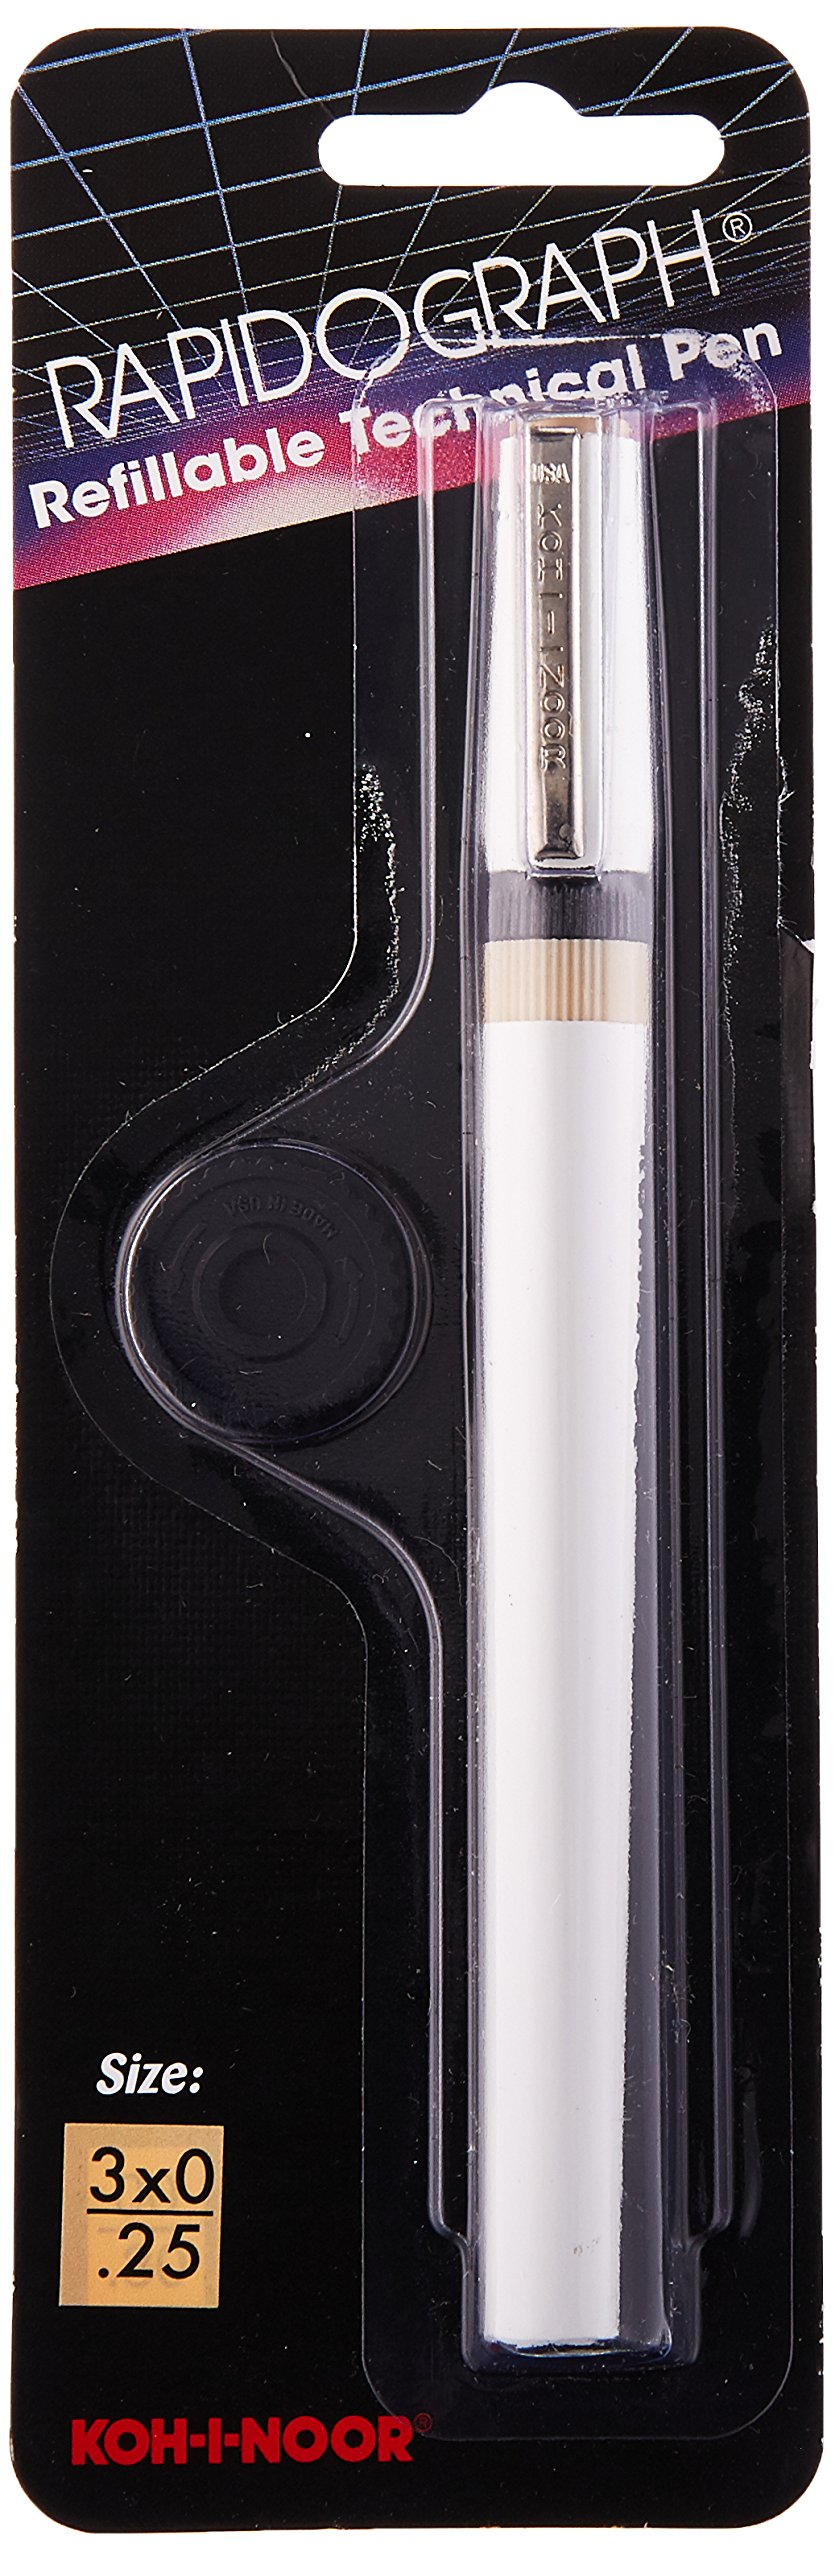 Koh-I-Noor Rapidograph Technical and Artist Pen.25mm Nib, 1 Each (3165.ZZZ) by Koh-I-Noor (Image #2)